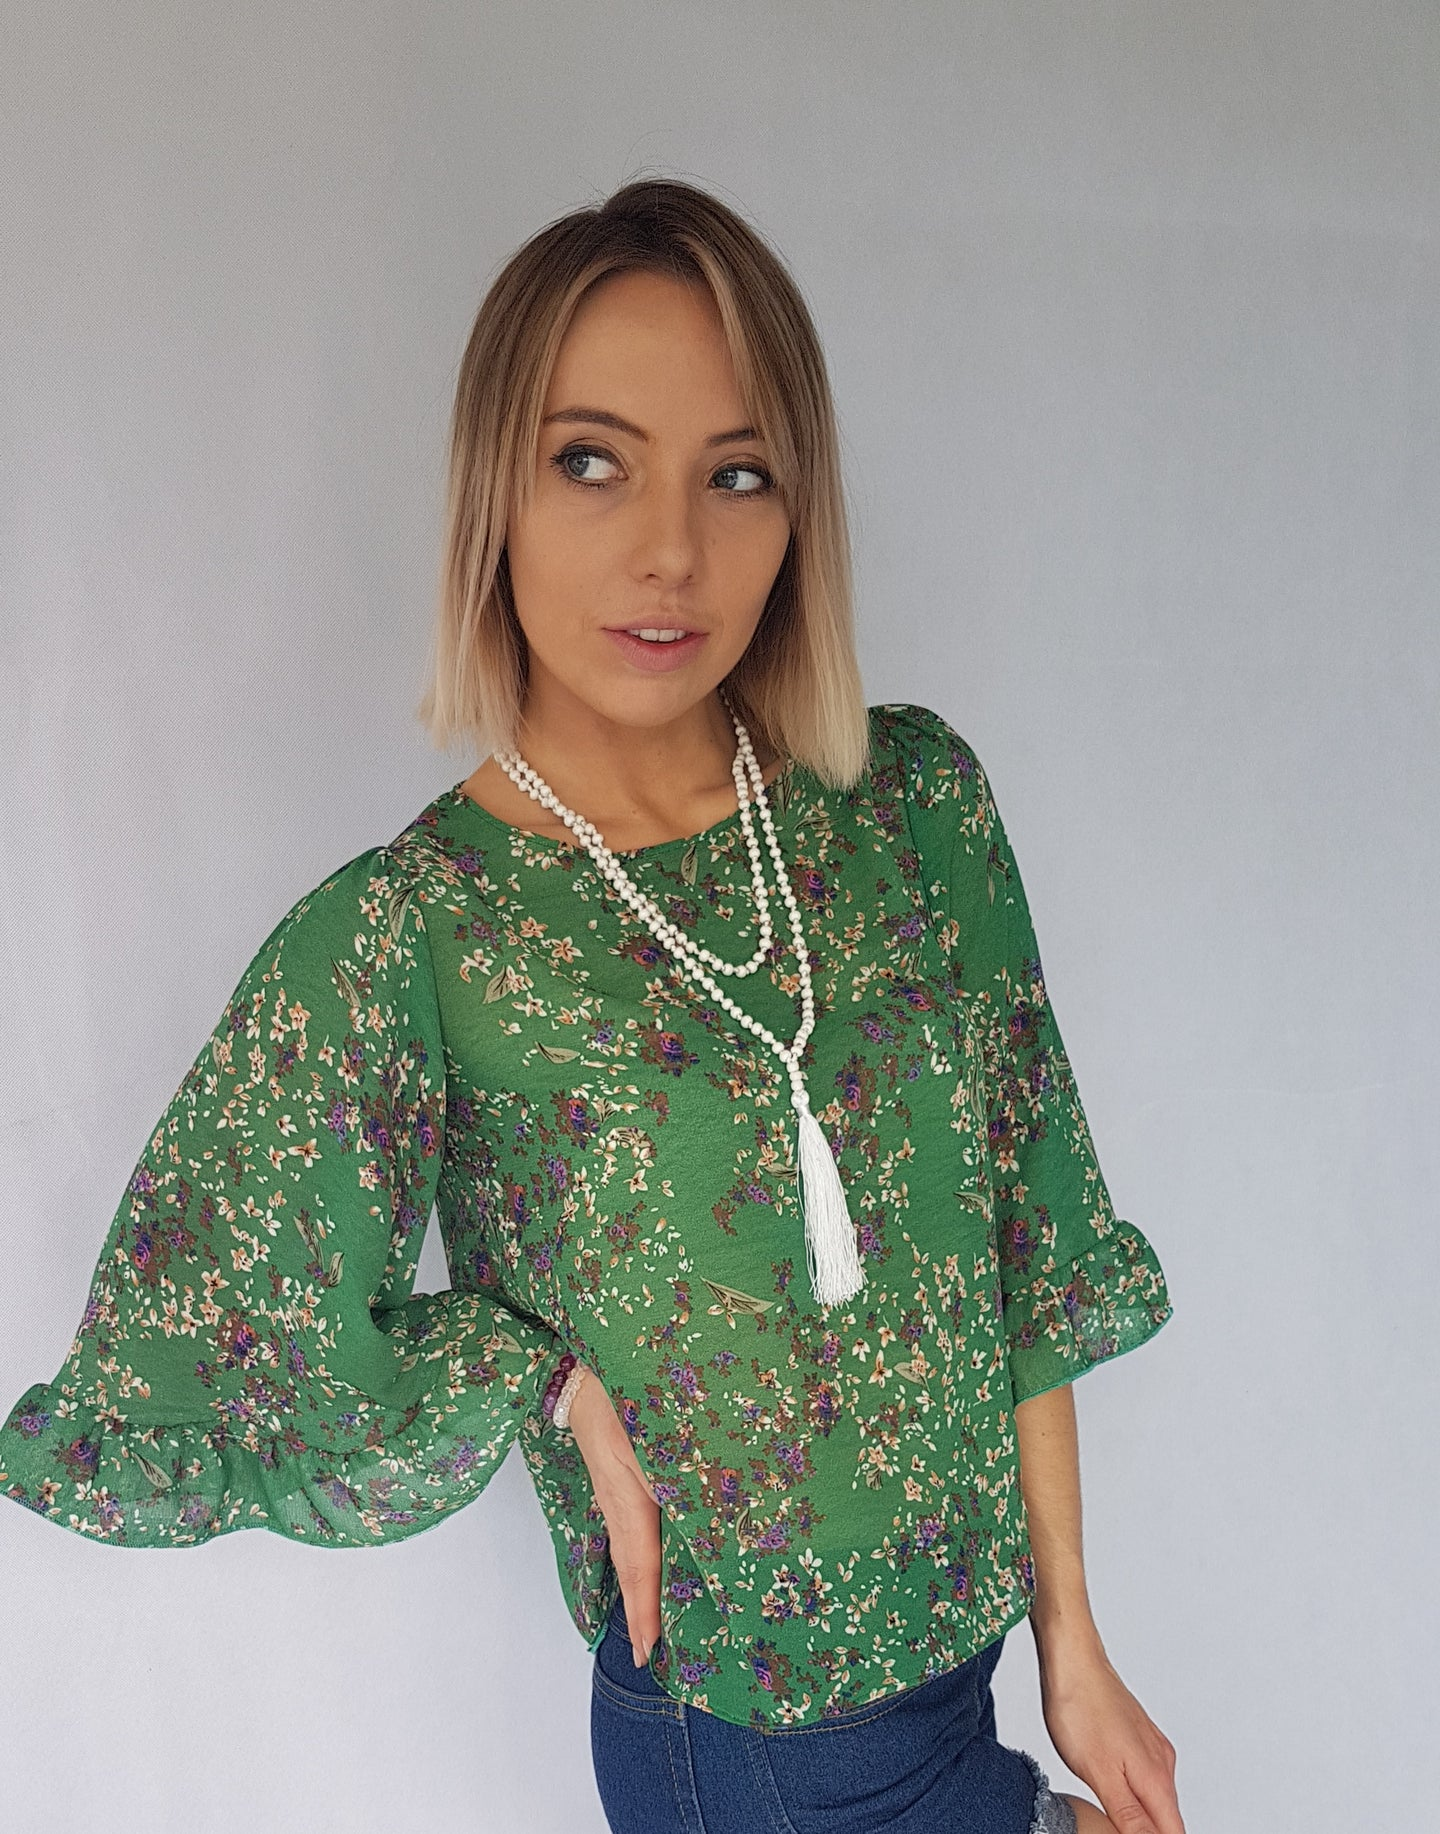 GREEN FLOWER RUFFLE TOP